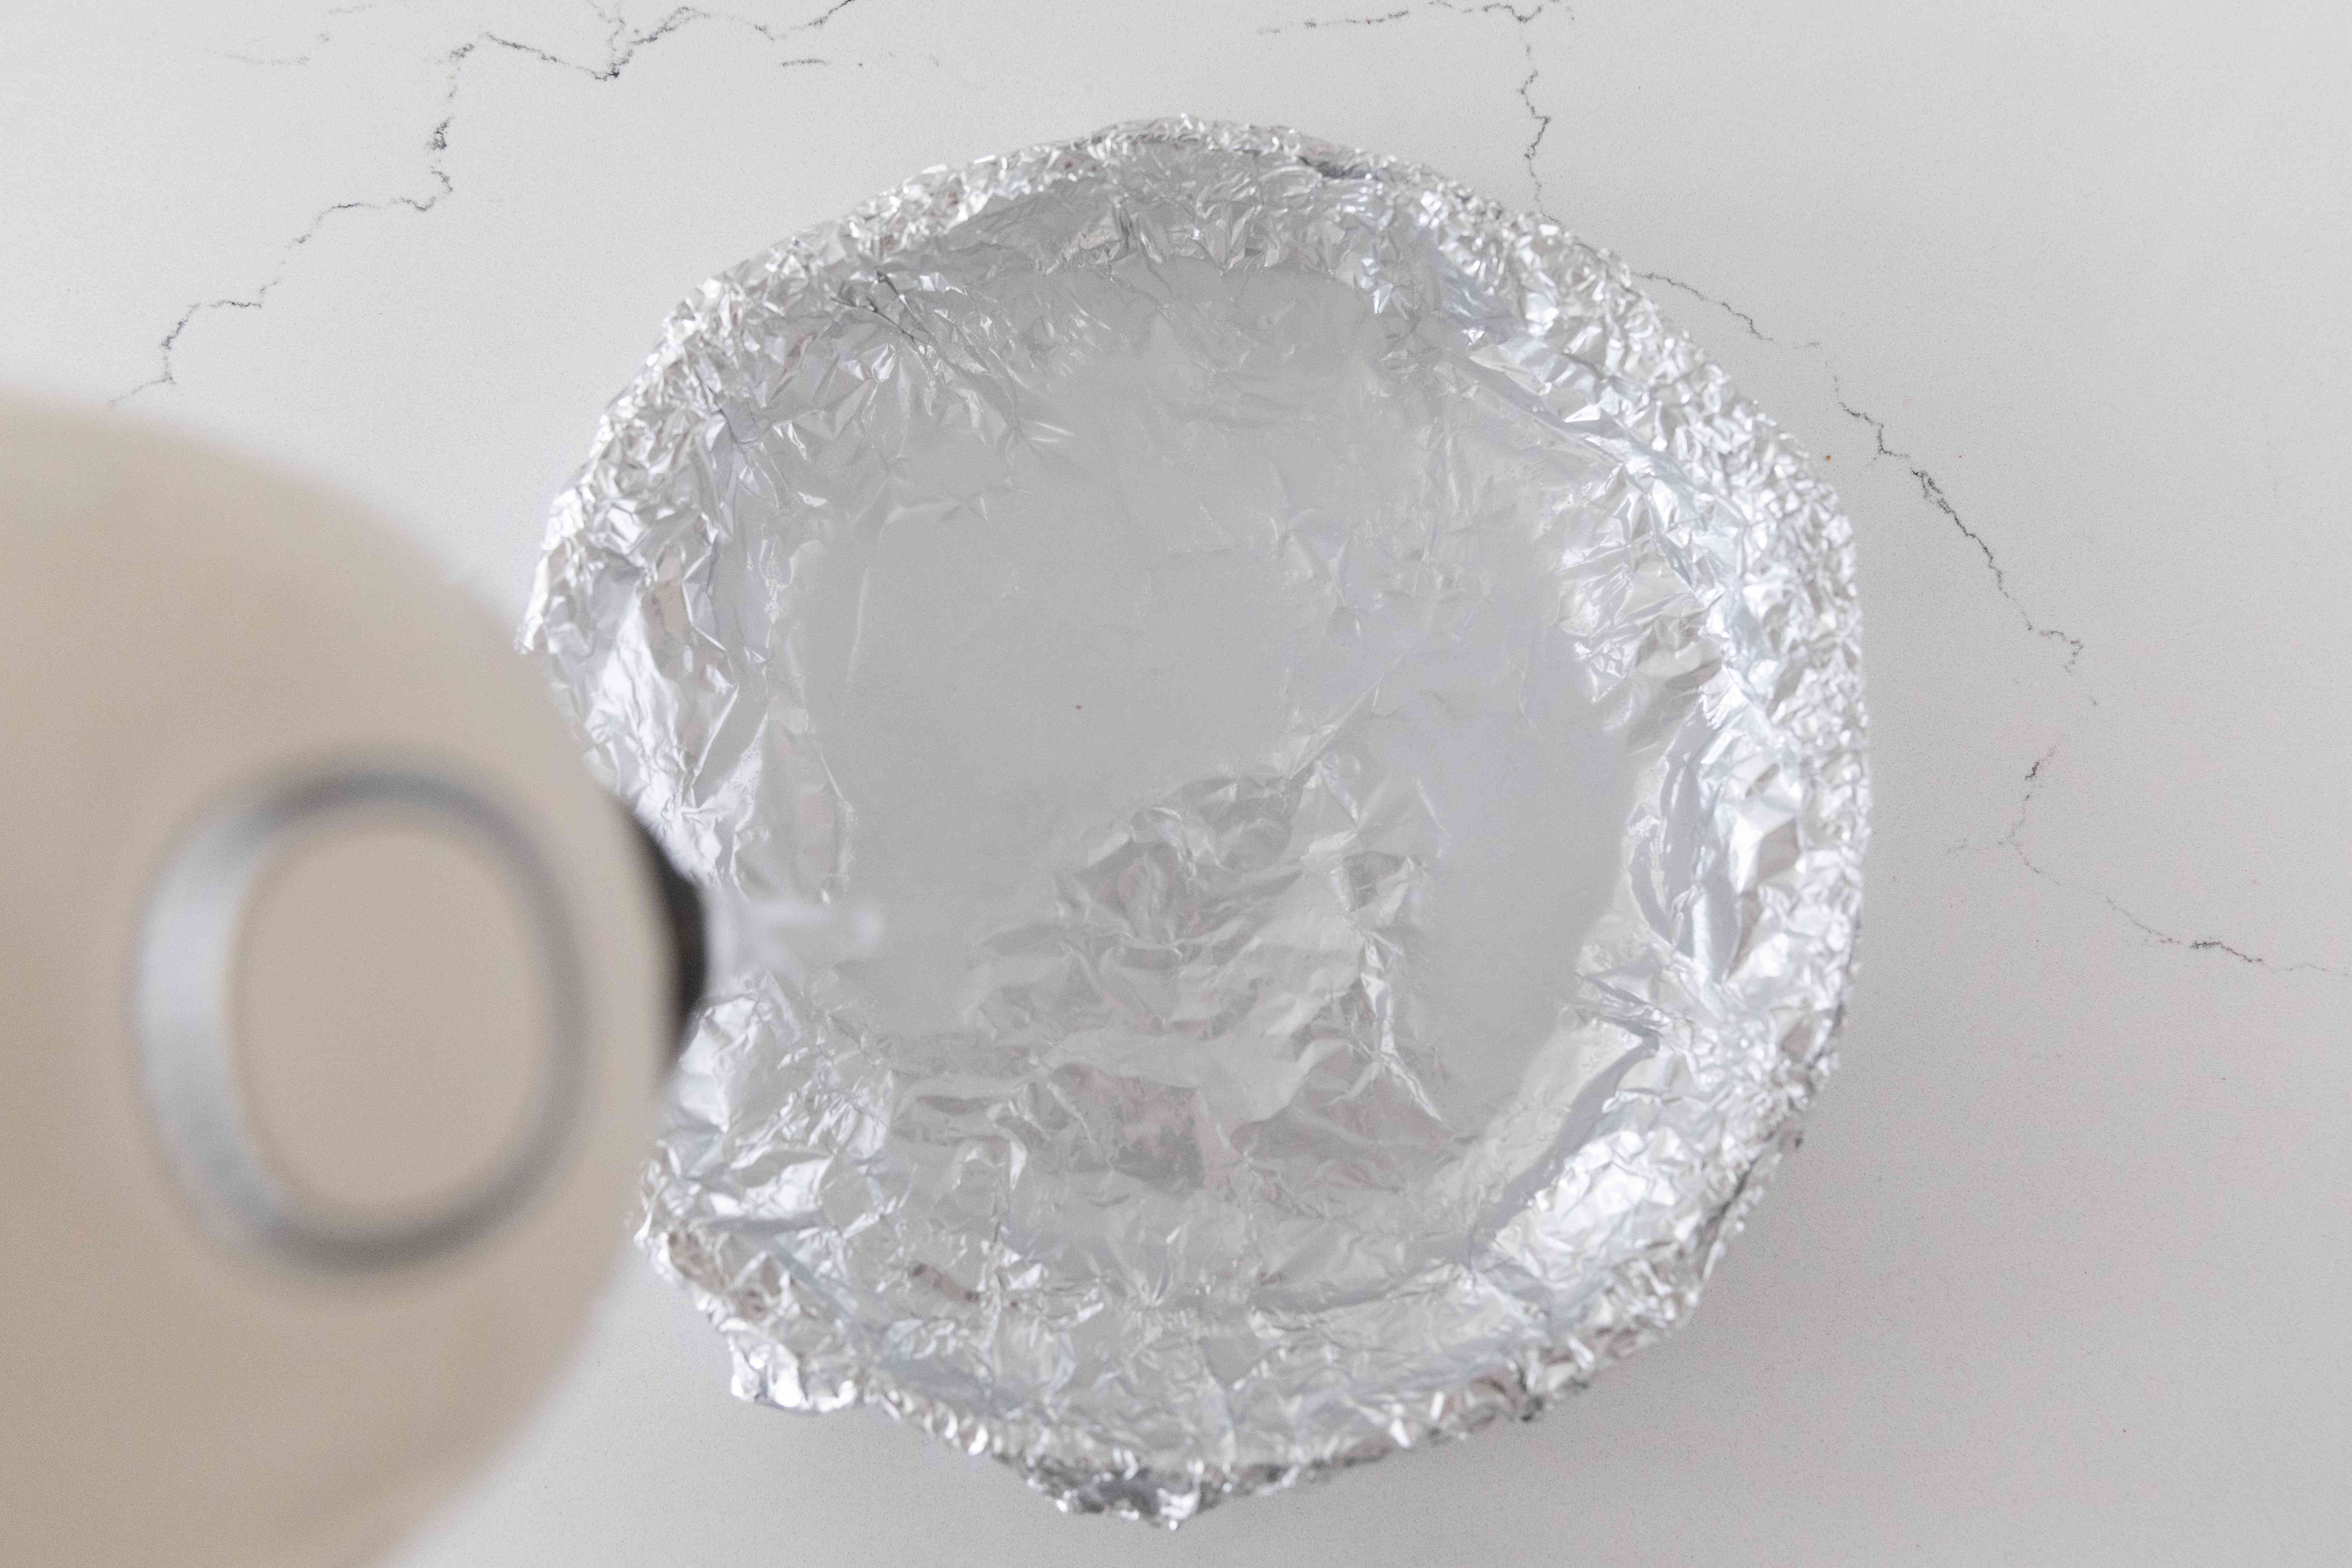 adding boiling water to the foil